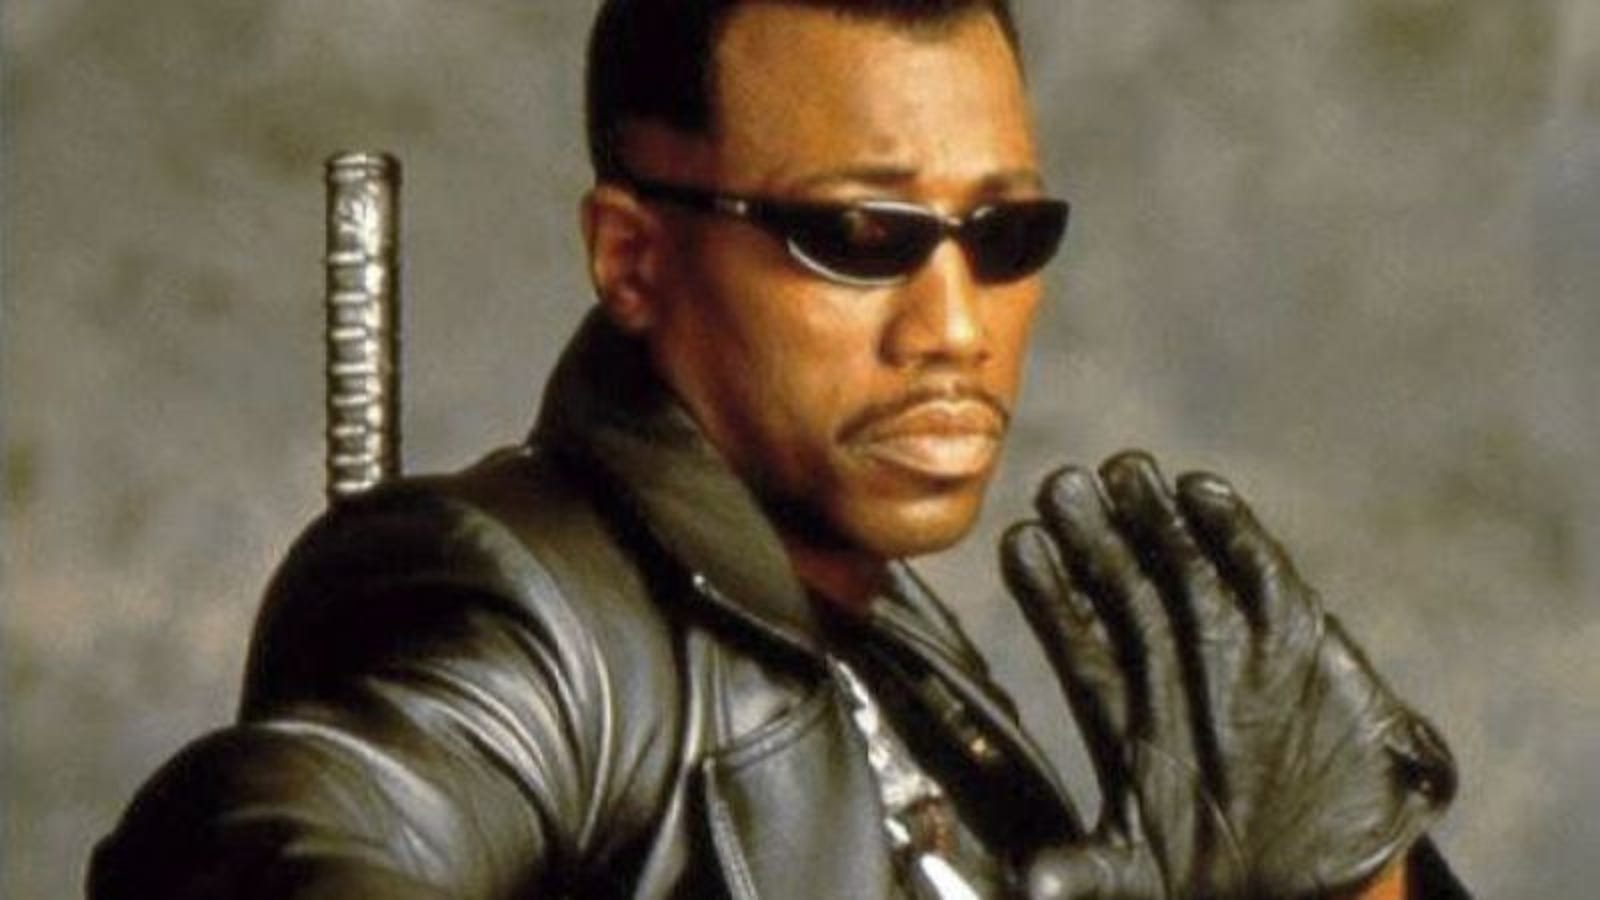 Wesley Snipes To Co Star In Endgame Nbcs Next Big Action Pilot